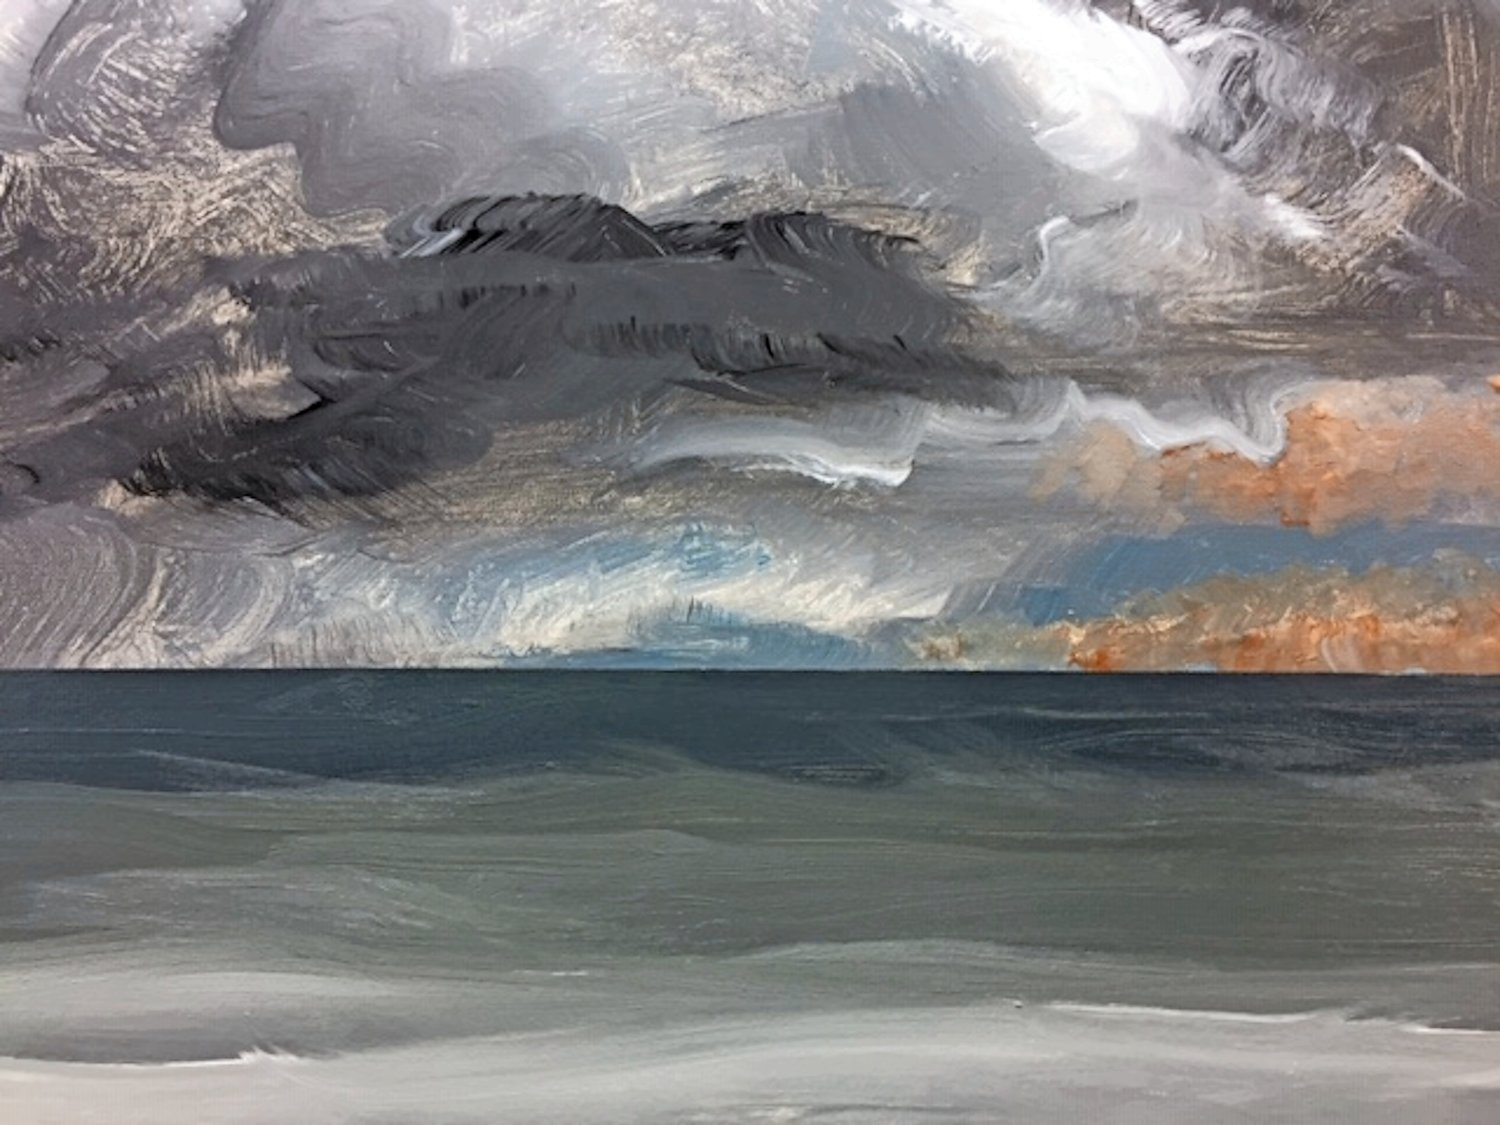 A scene of the Great South Bay before a storm. Nuccio painted the oil-on-canvas piece in 2017.